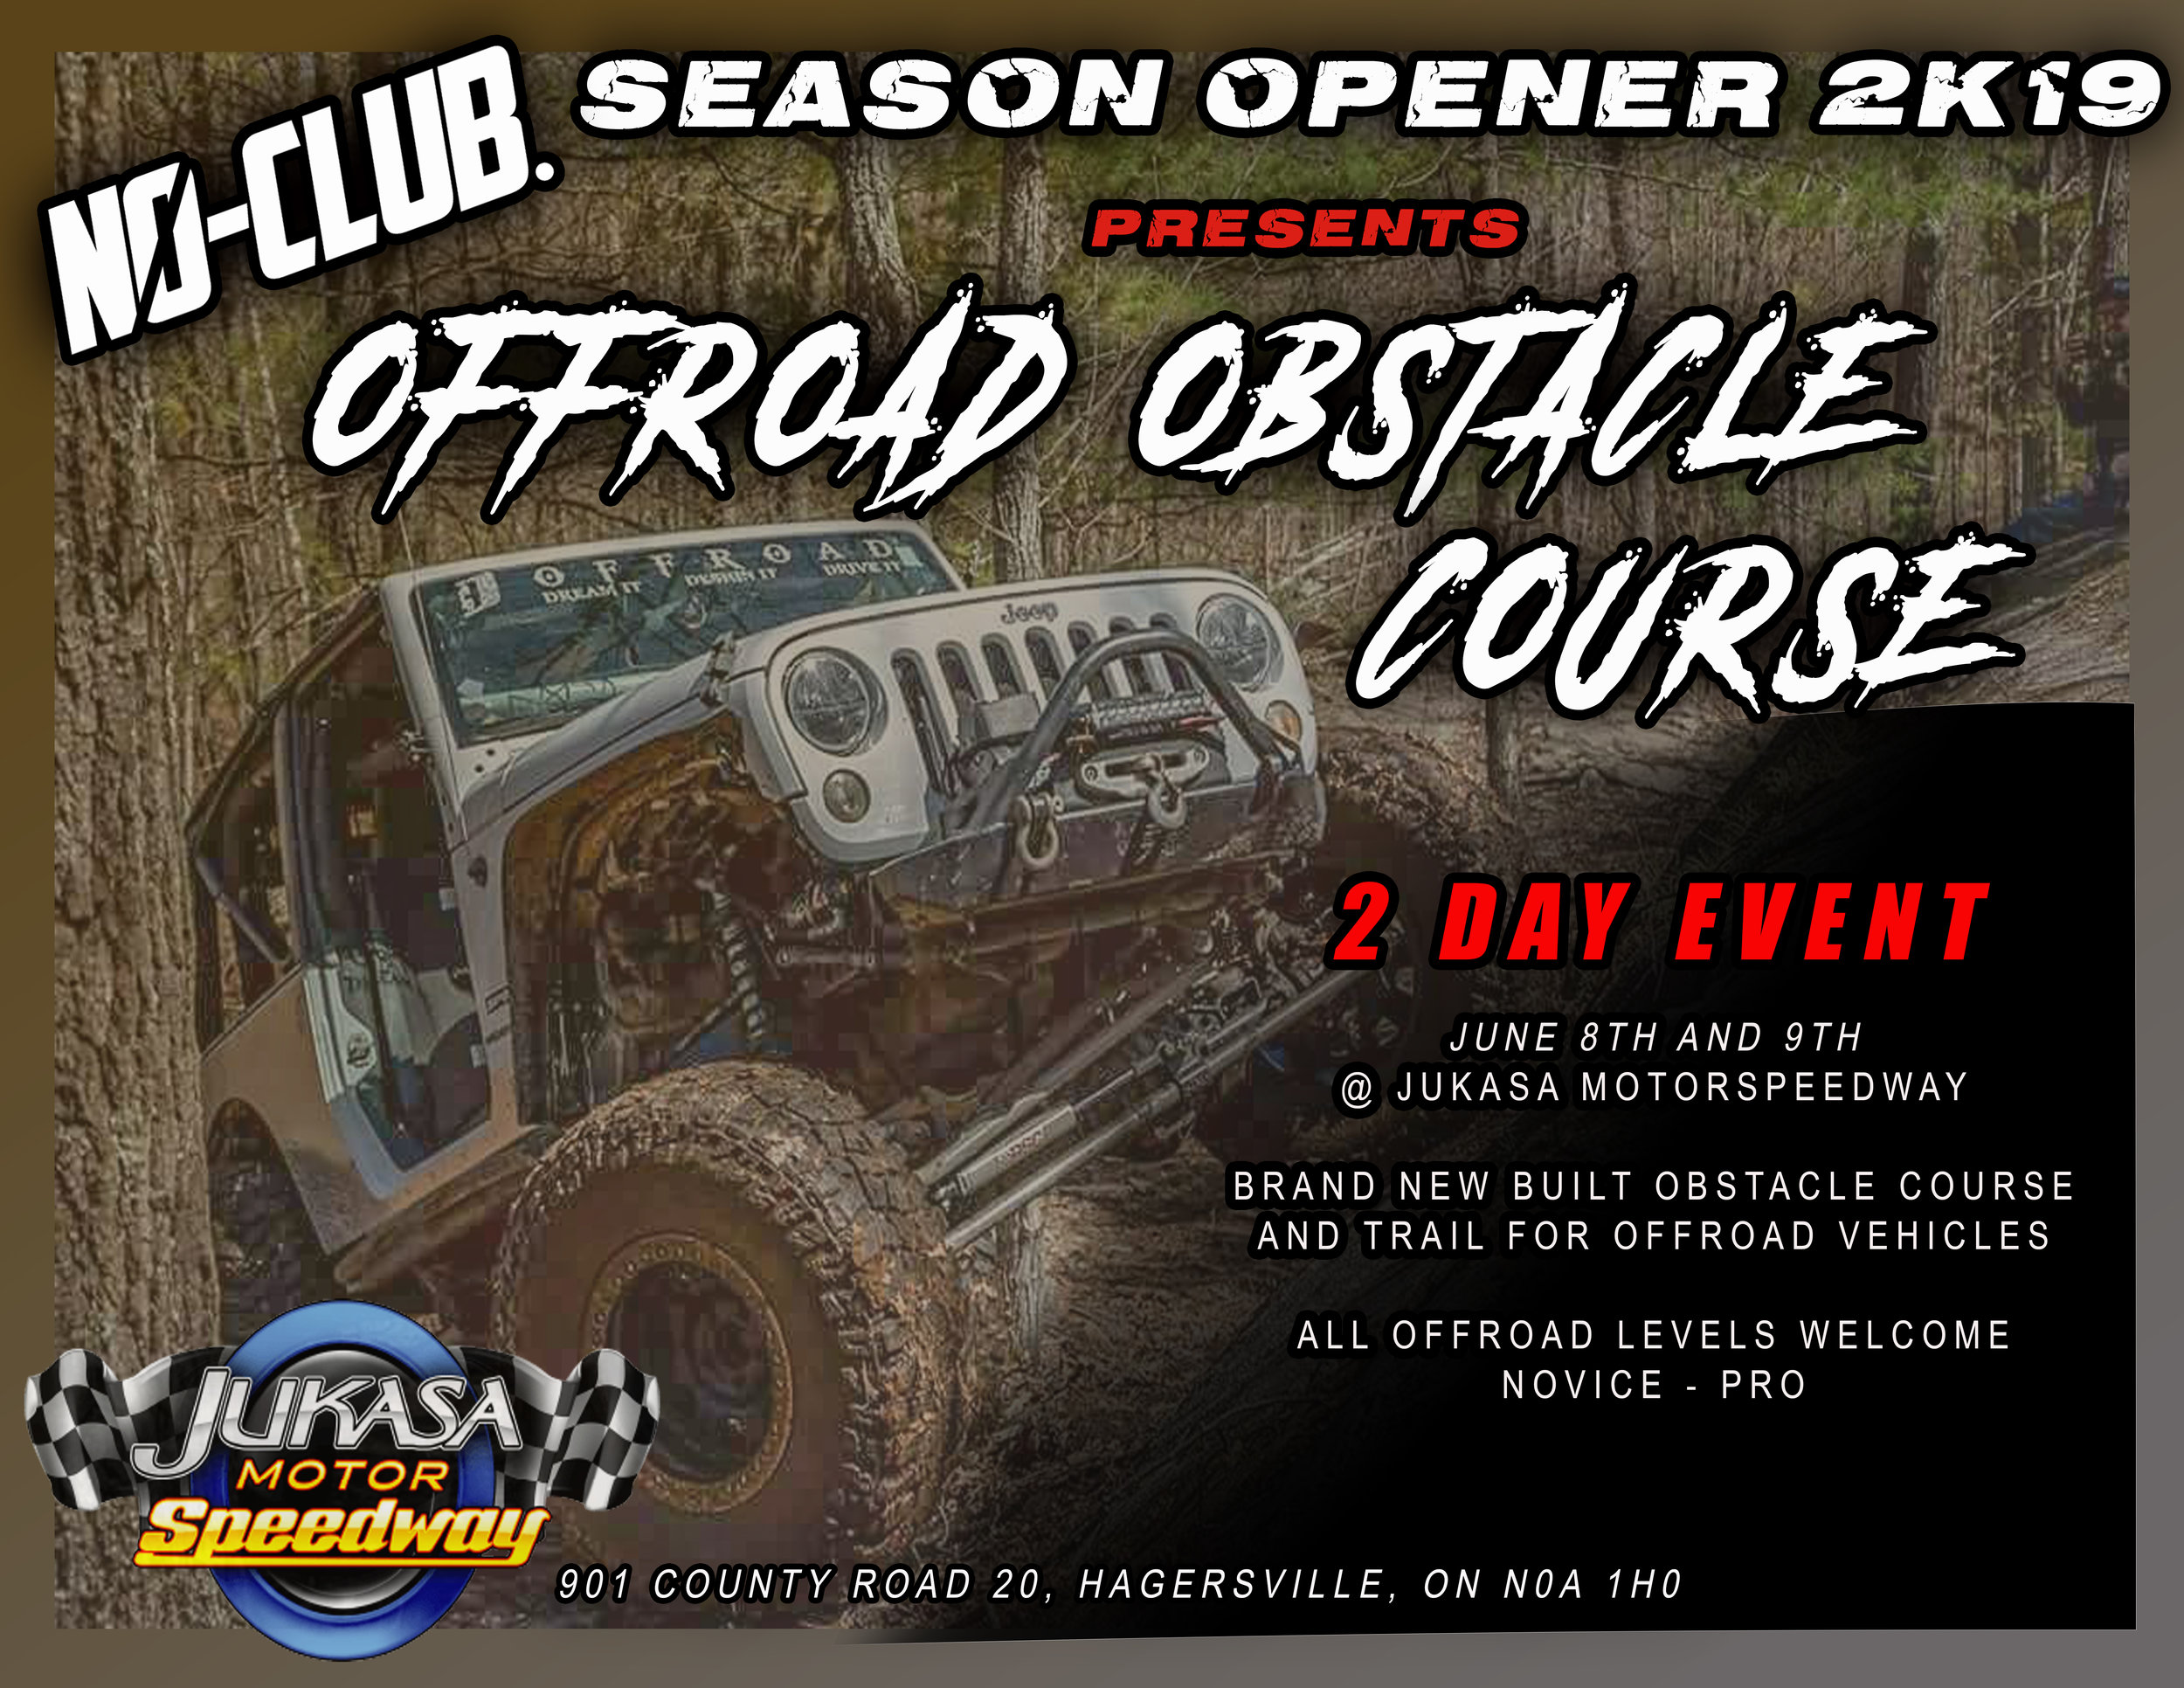 OFFROAD OBSTACLE COURSE - N0-Club and Jukasa Motor Speedway Presents:A Brand New, Custom BuiltOFF-ROAD OBSTACLE COURSEThats right! We've combined the best of all worlds in the automotive industry; show vehicles, racing enthusiast of all kinds and the rugged off road 4x4 vehicle will all find something at our event!Our Season Opener will feature an OFF-ROAD OBSTACLE COURSE both Saturday and SundayAll experience levels are welcome to participate, there will be obstacles for all levels from novice to pro.The Obstacle Course will be an additional cost on top of admission and waivers will need to be signed before you will be admitted into the off-road area.* THIS IS NOT A MUD EVENT**Prices to be Announced*